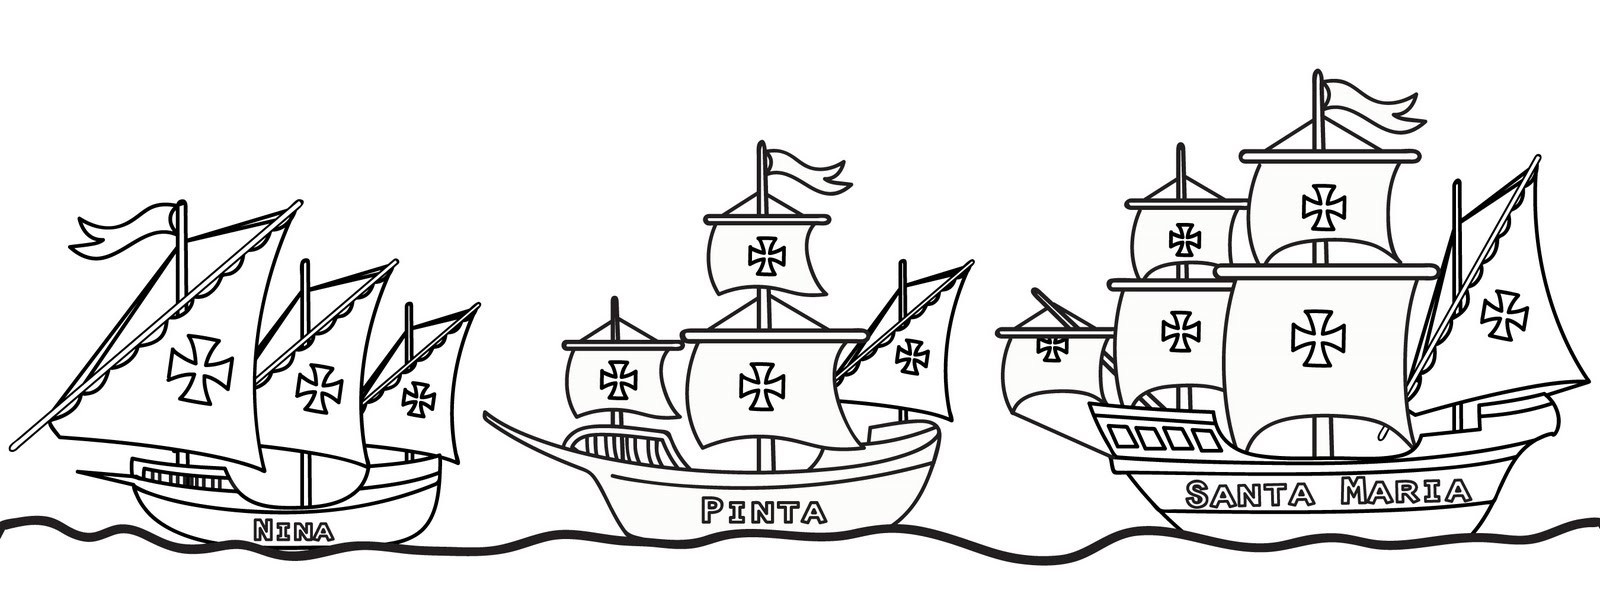 hight resolution of Columbus Day Coloring Pages - Best Coloring Pages For Kids